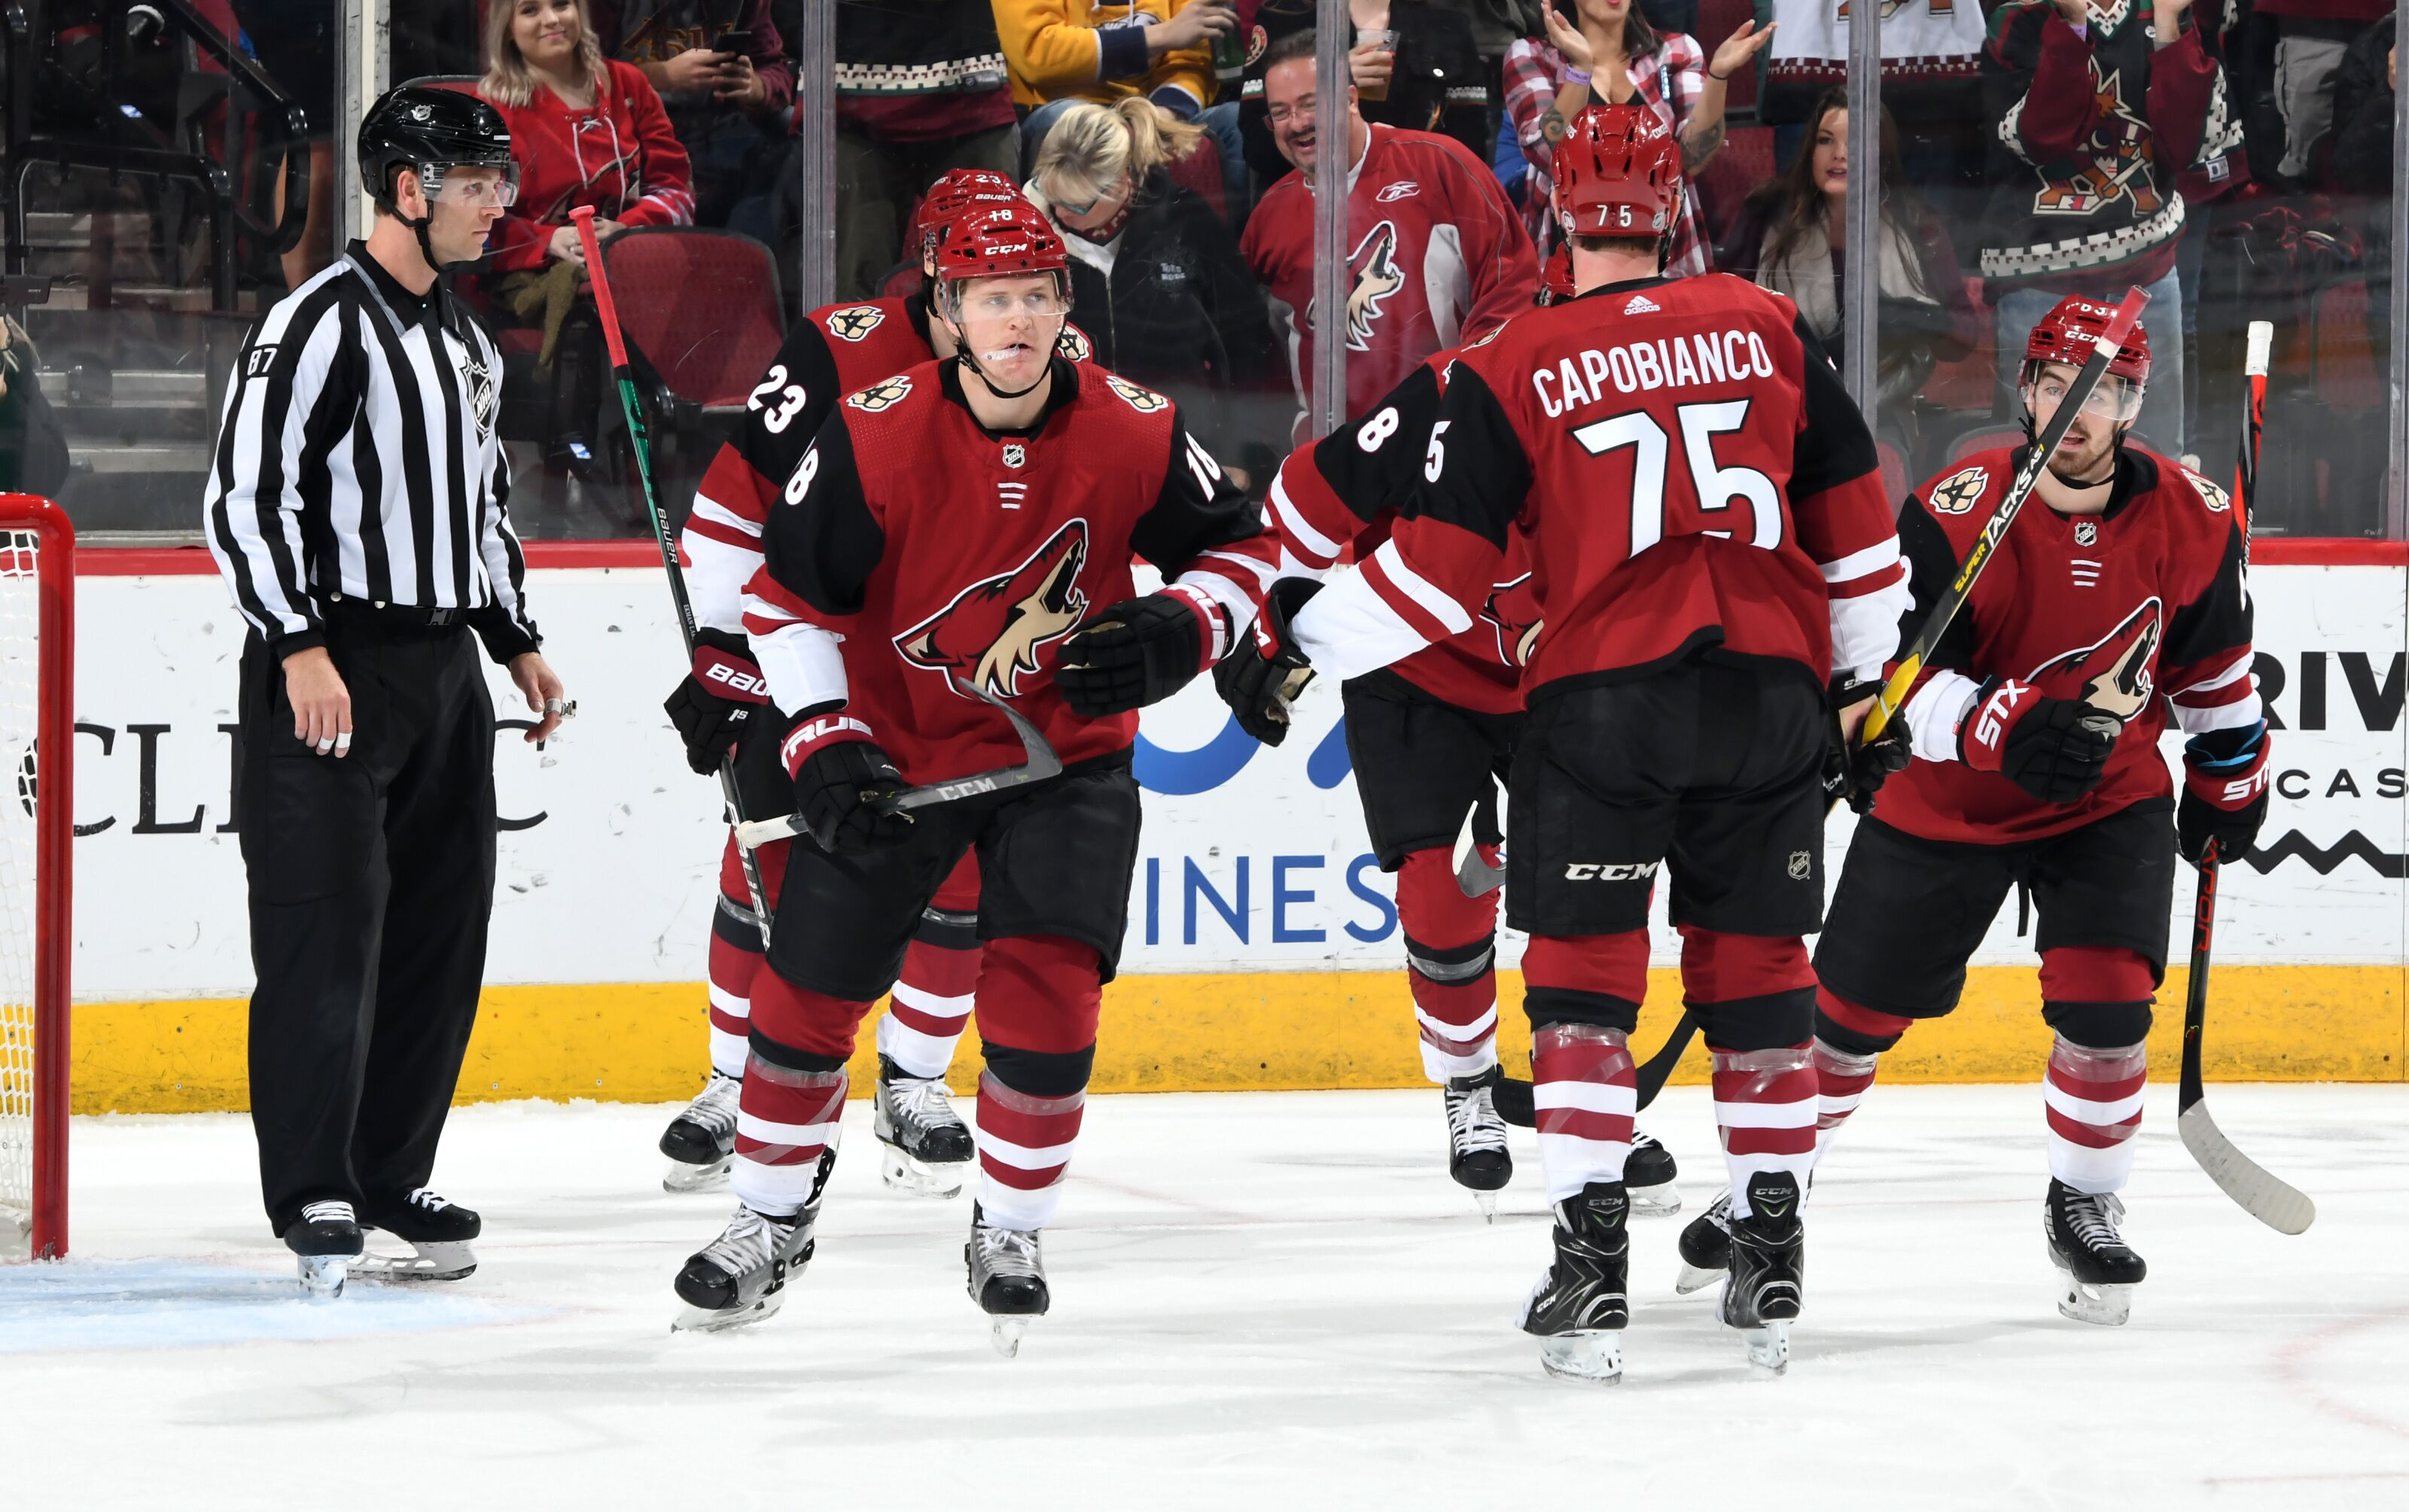 Arizona Coyotes blow past Predators by a score of 5-2